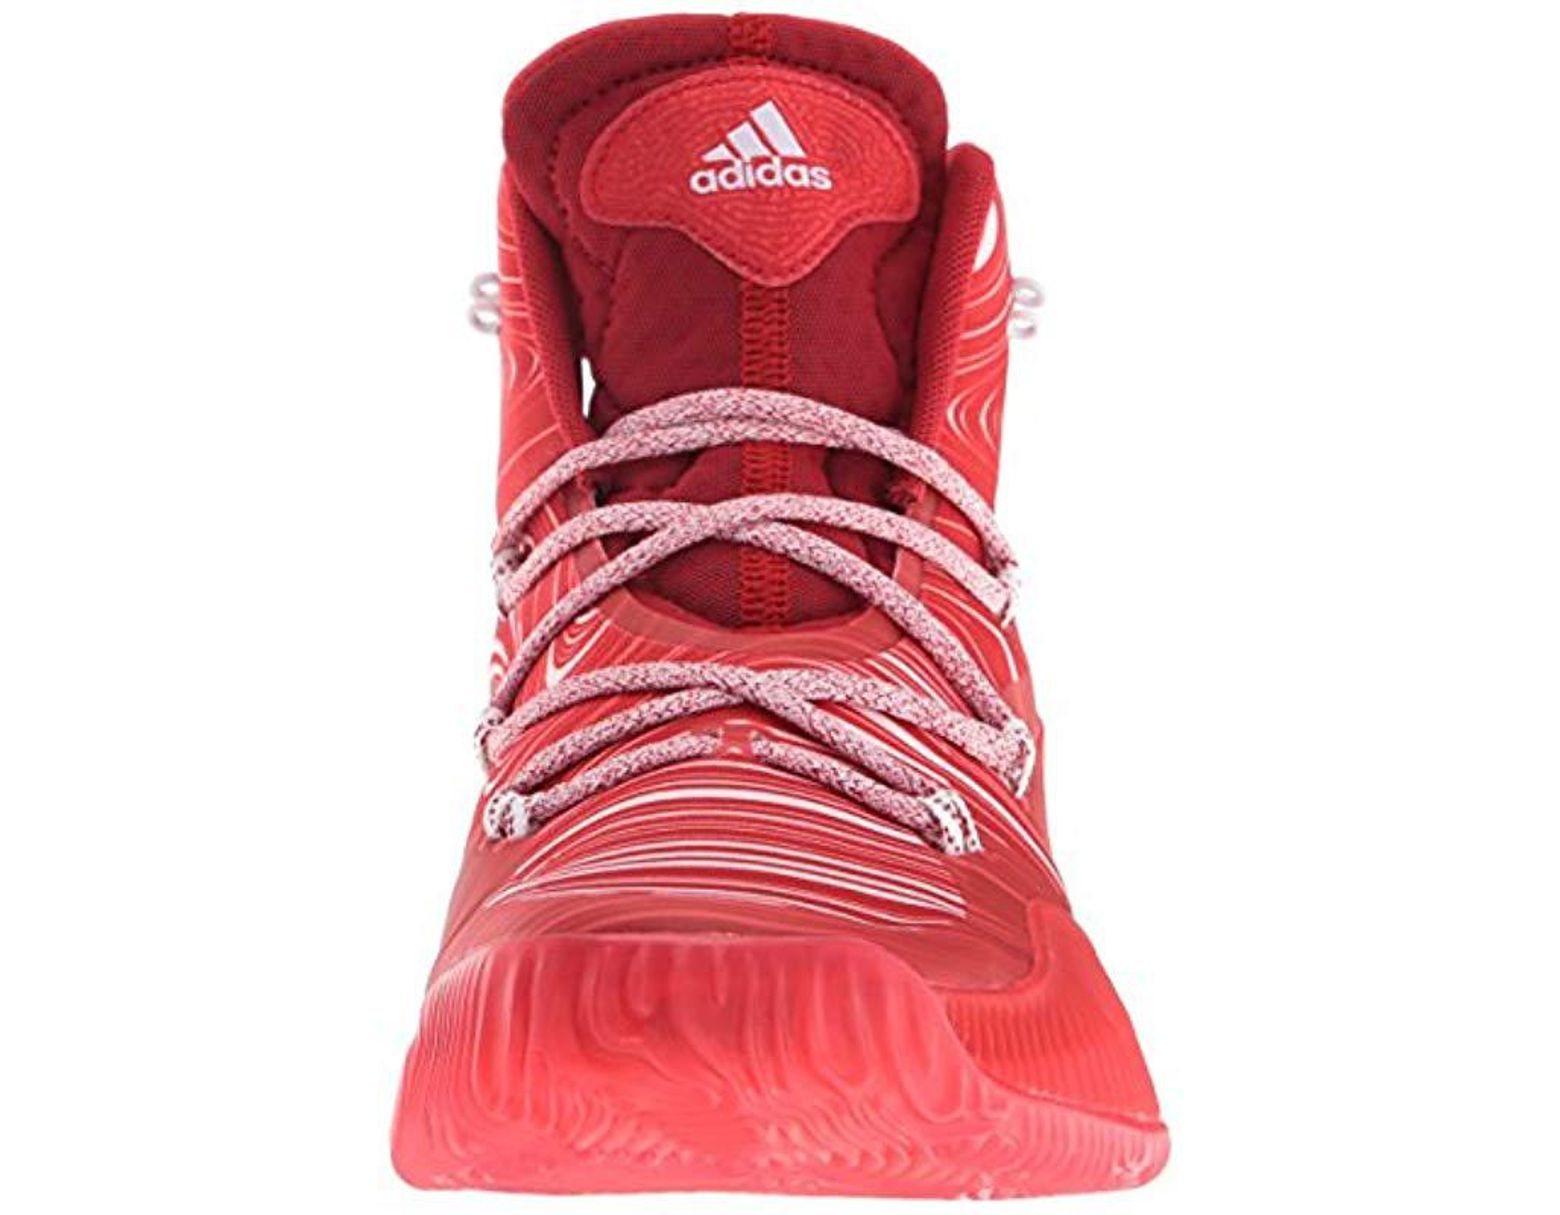 huge discount 2f513 c43ac Lyst - adidas Performance Crazy Explosive Basketball Shoe in Red for Men -  Save 8%